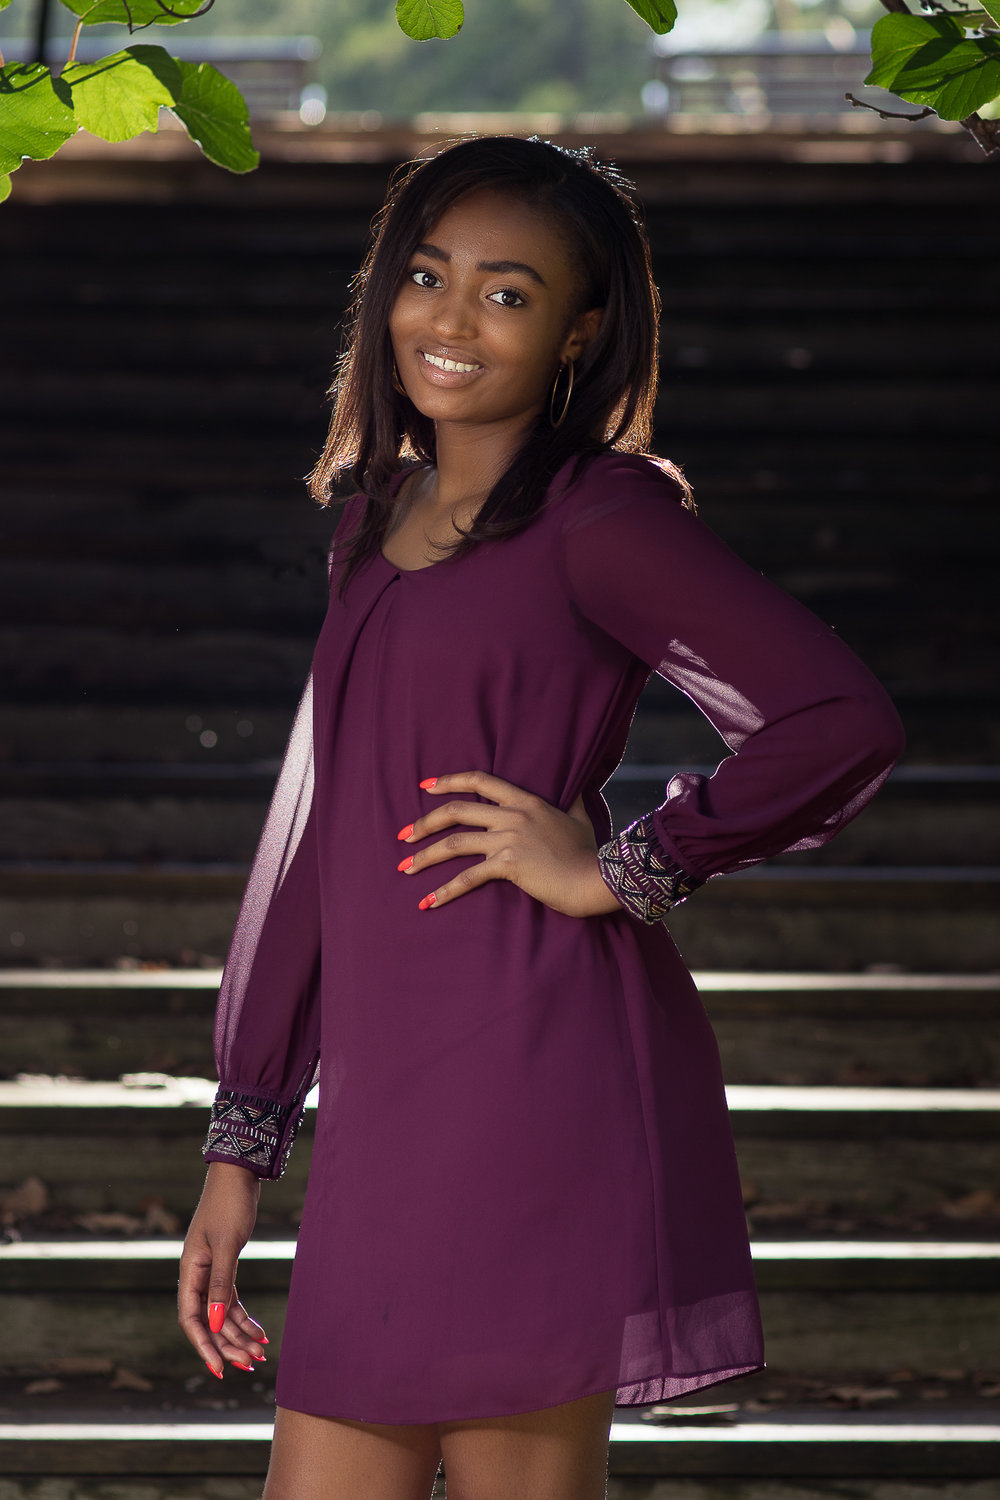 Edge Portraiture - Atlanta Gwinnett Senior Photos (1 of 6).jpg